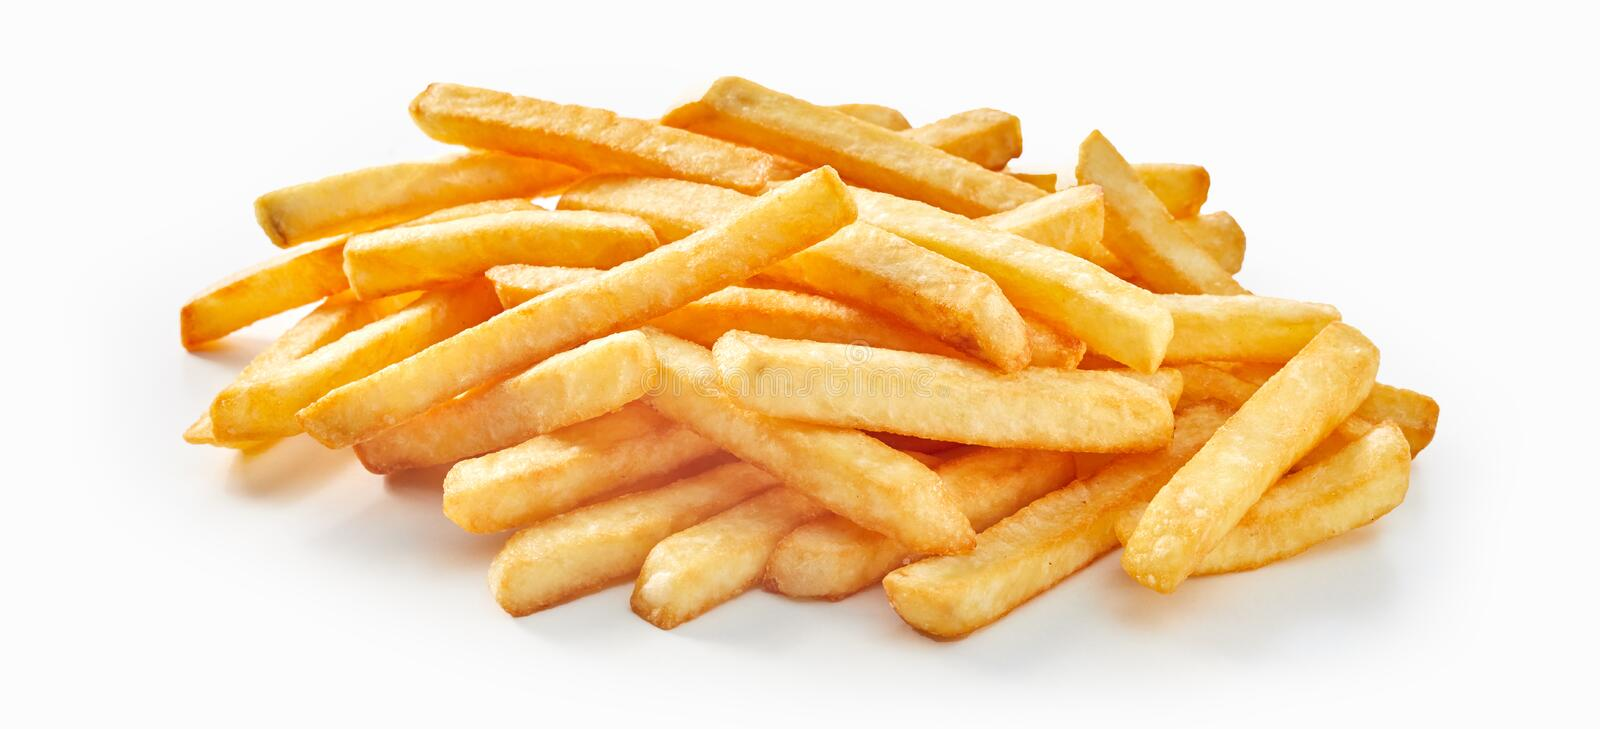 Bunch of fresh deep fried french fries stock photos